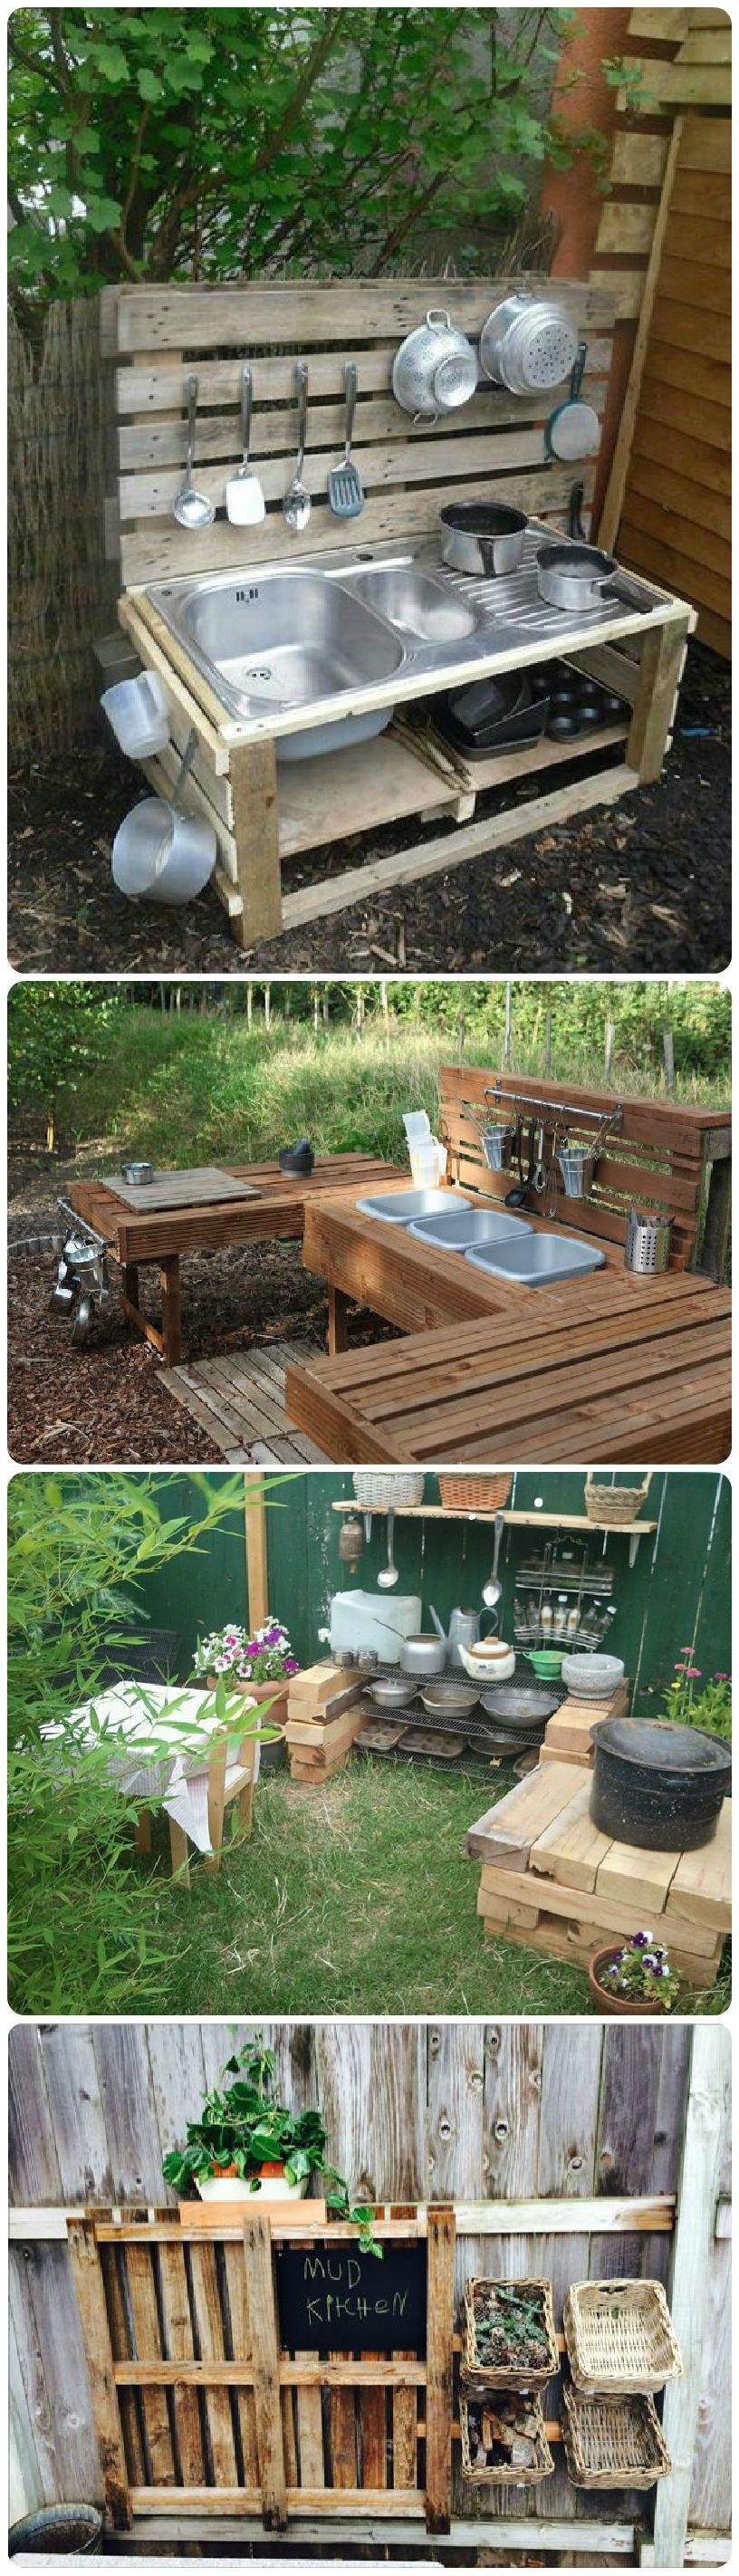 Mud Kitchens (also Known As Outdoor Kitchens Or Mud Pie Kitchens) Are One Of